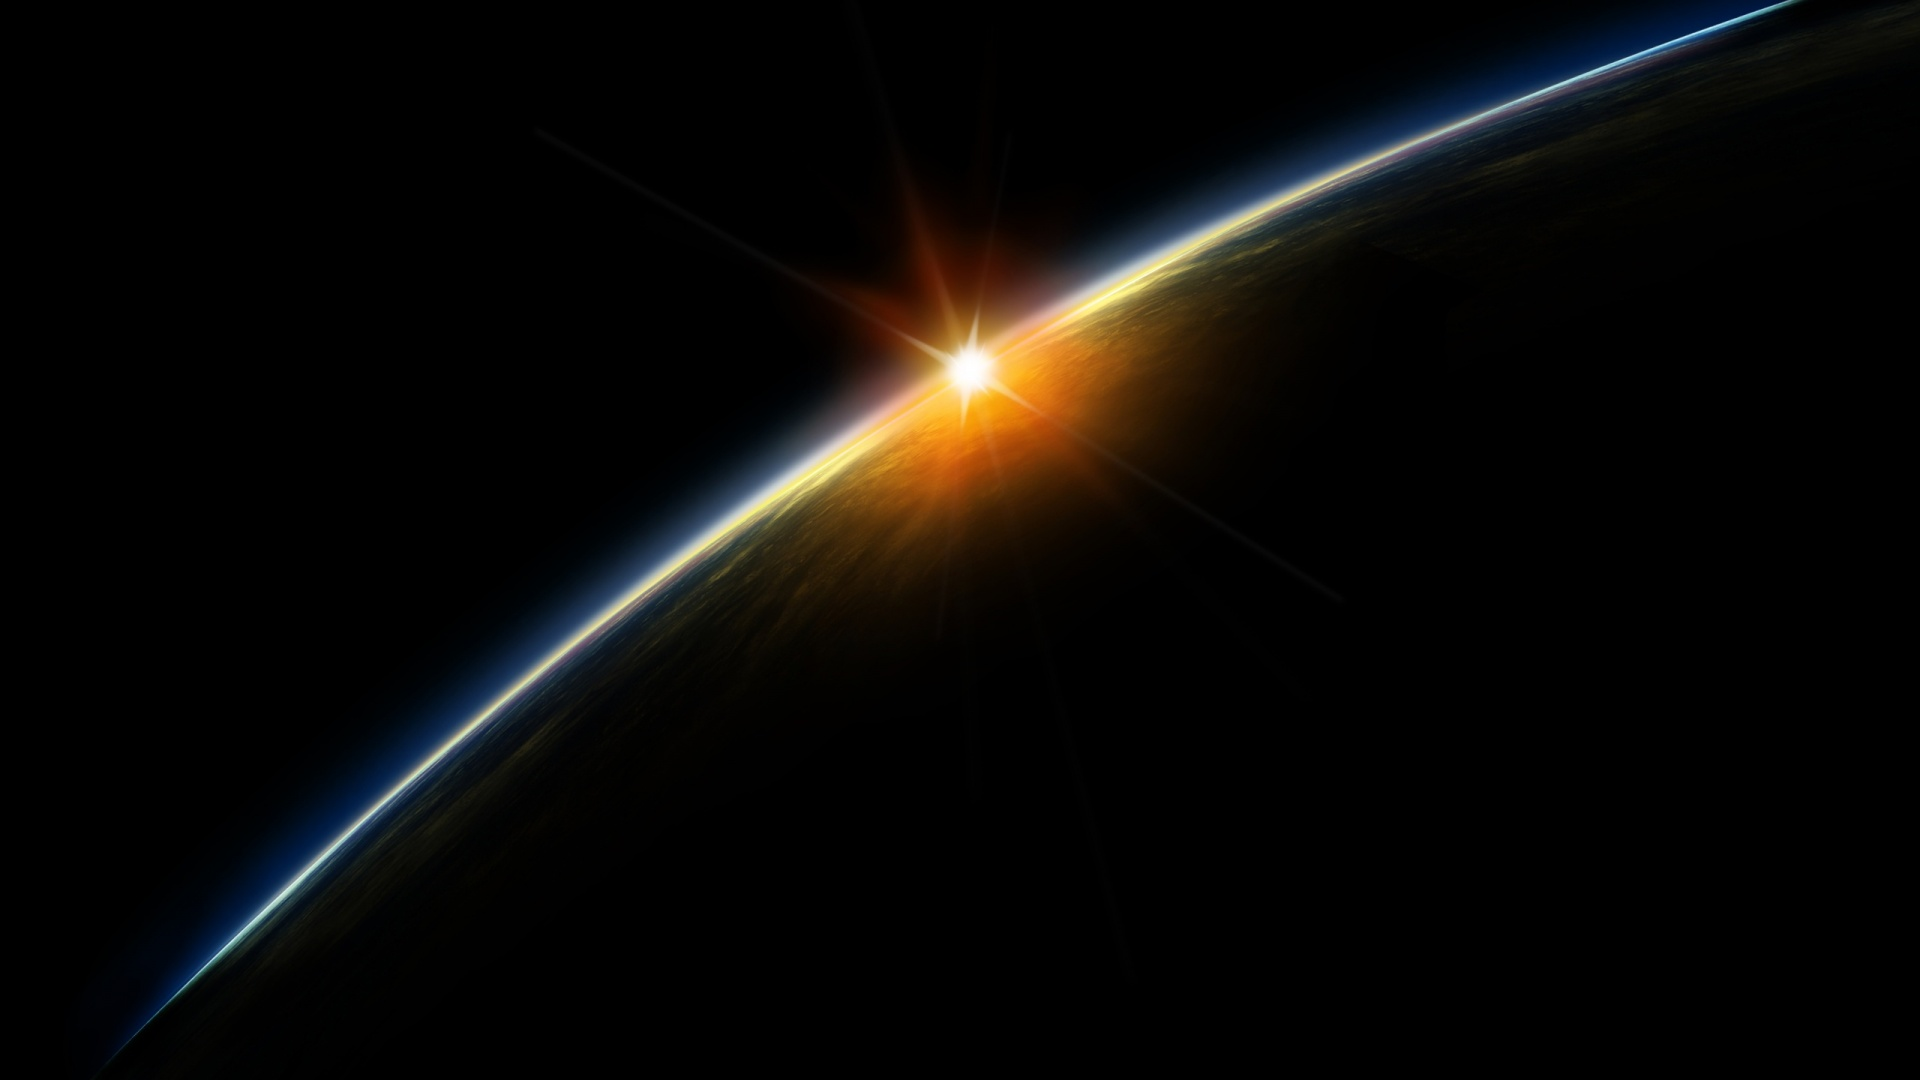 space station sunrise wallpaper - photo #4